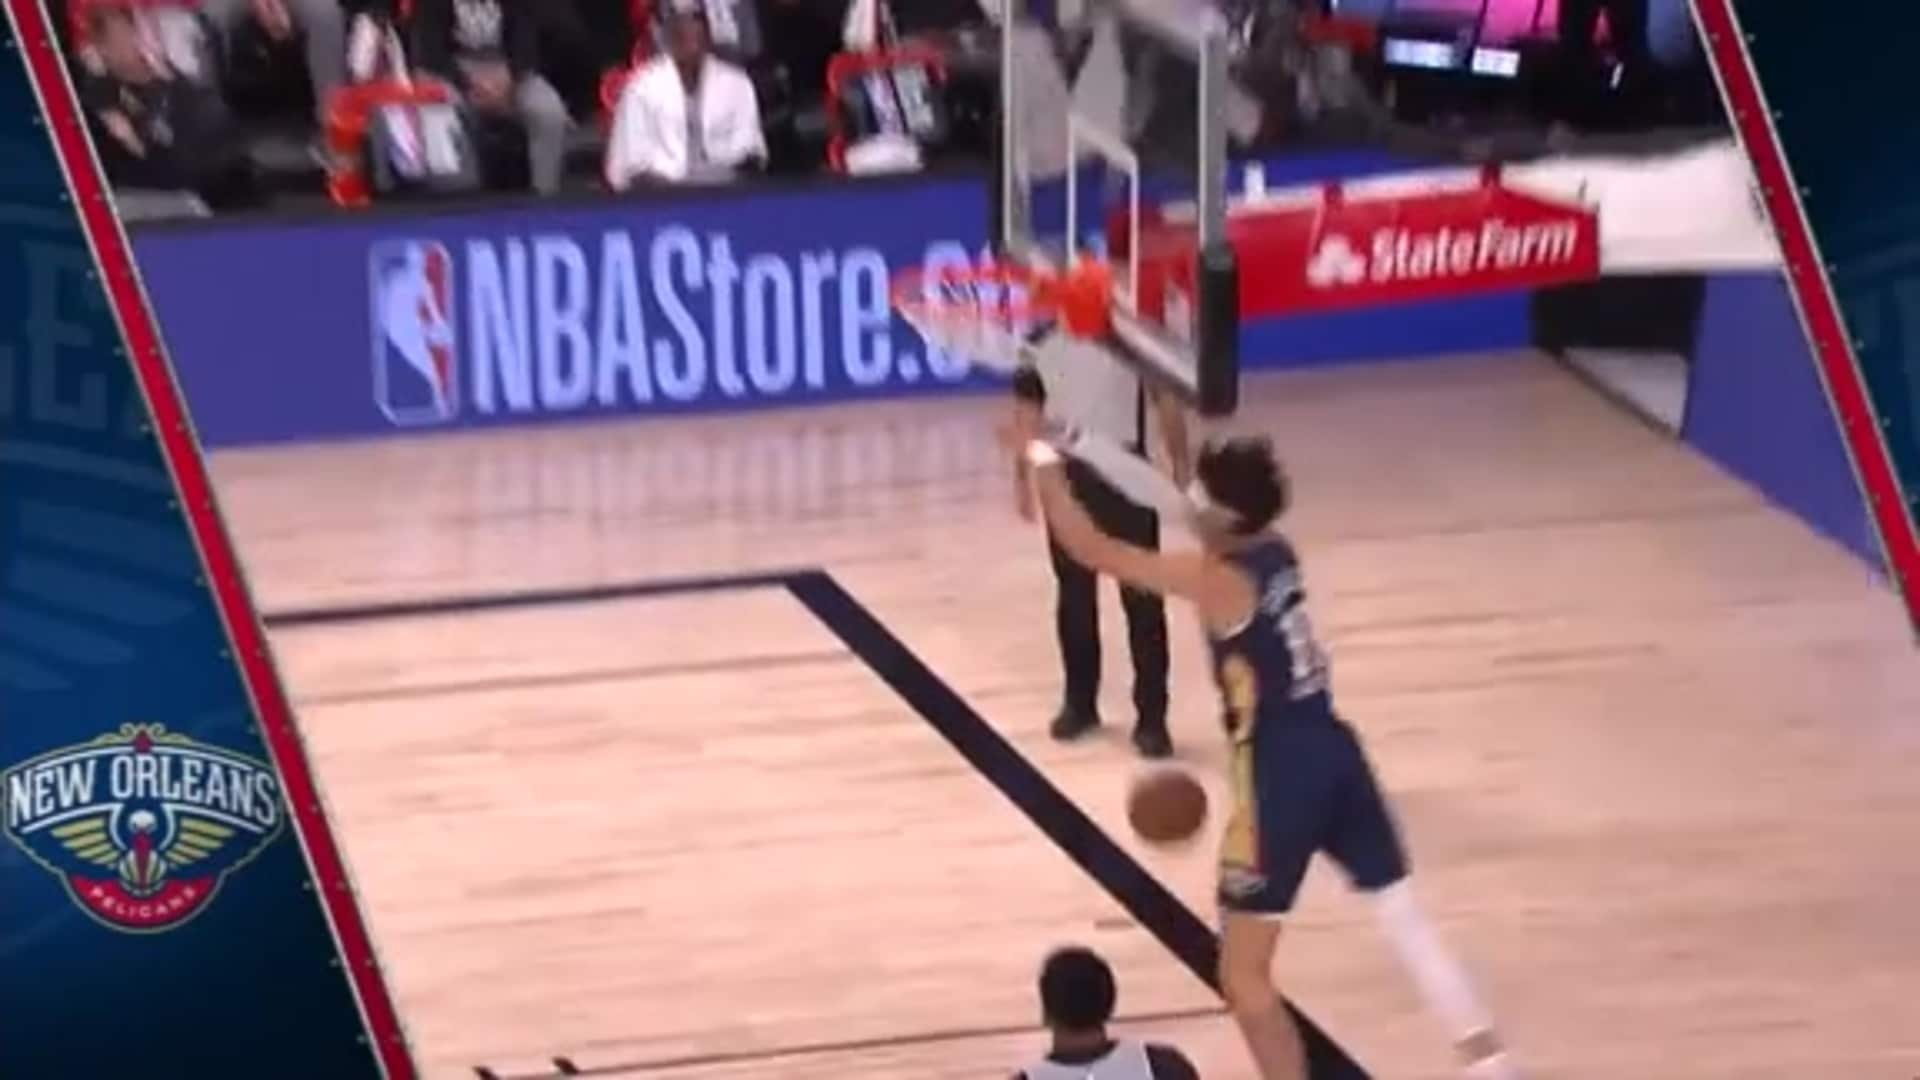 Pelicans vs. Spurs Highlights: Jaxson Hayes big plays on both ends of the floor